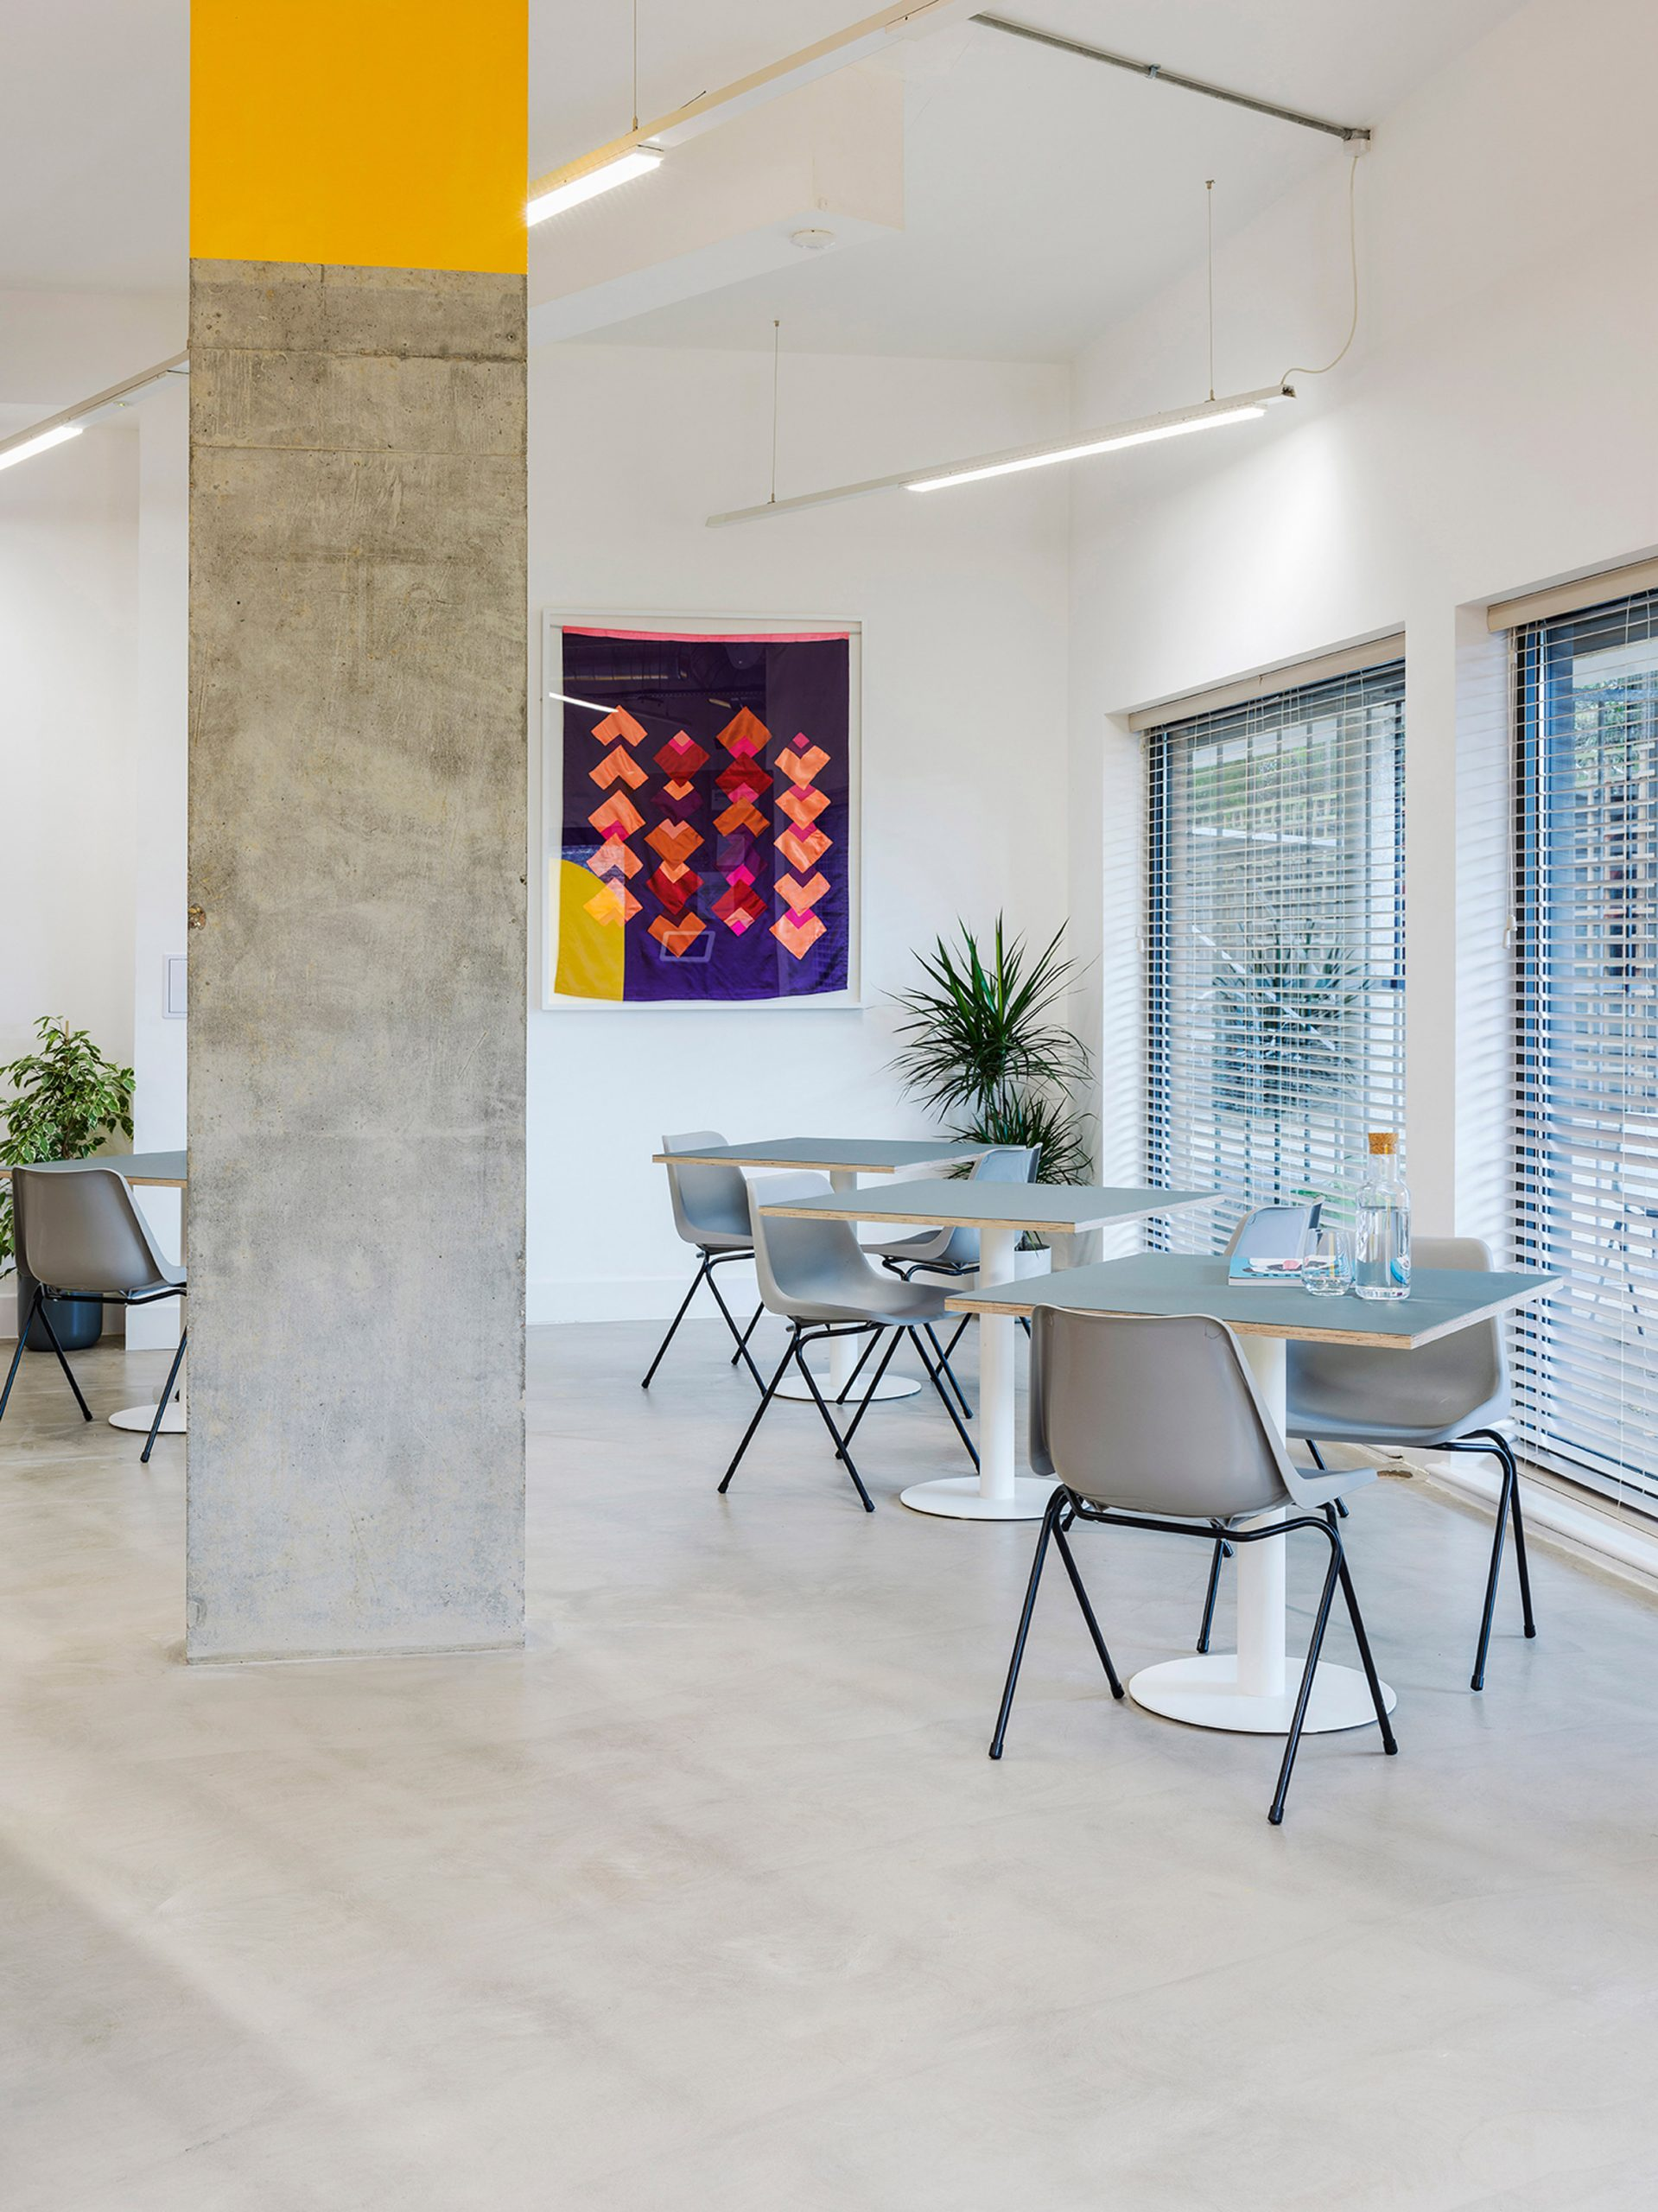 ARC Club co-working office in Homerton, London designed by Caro Lundin